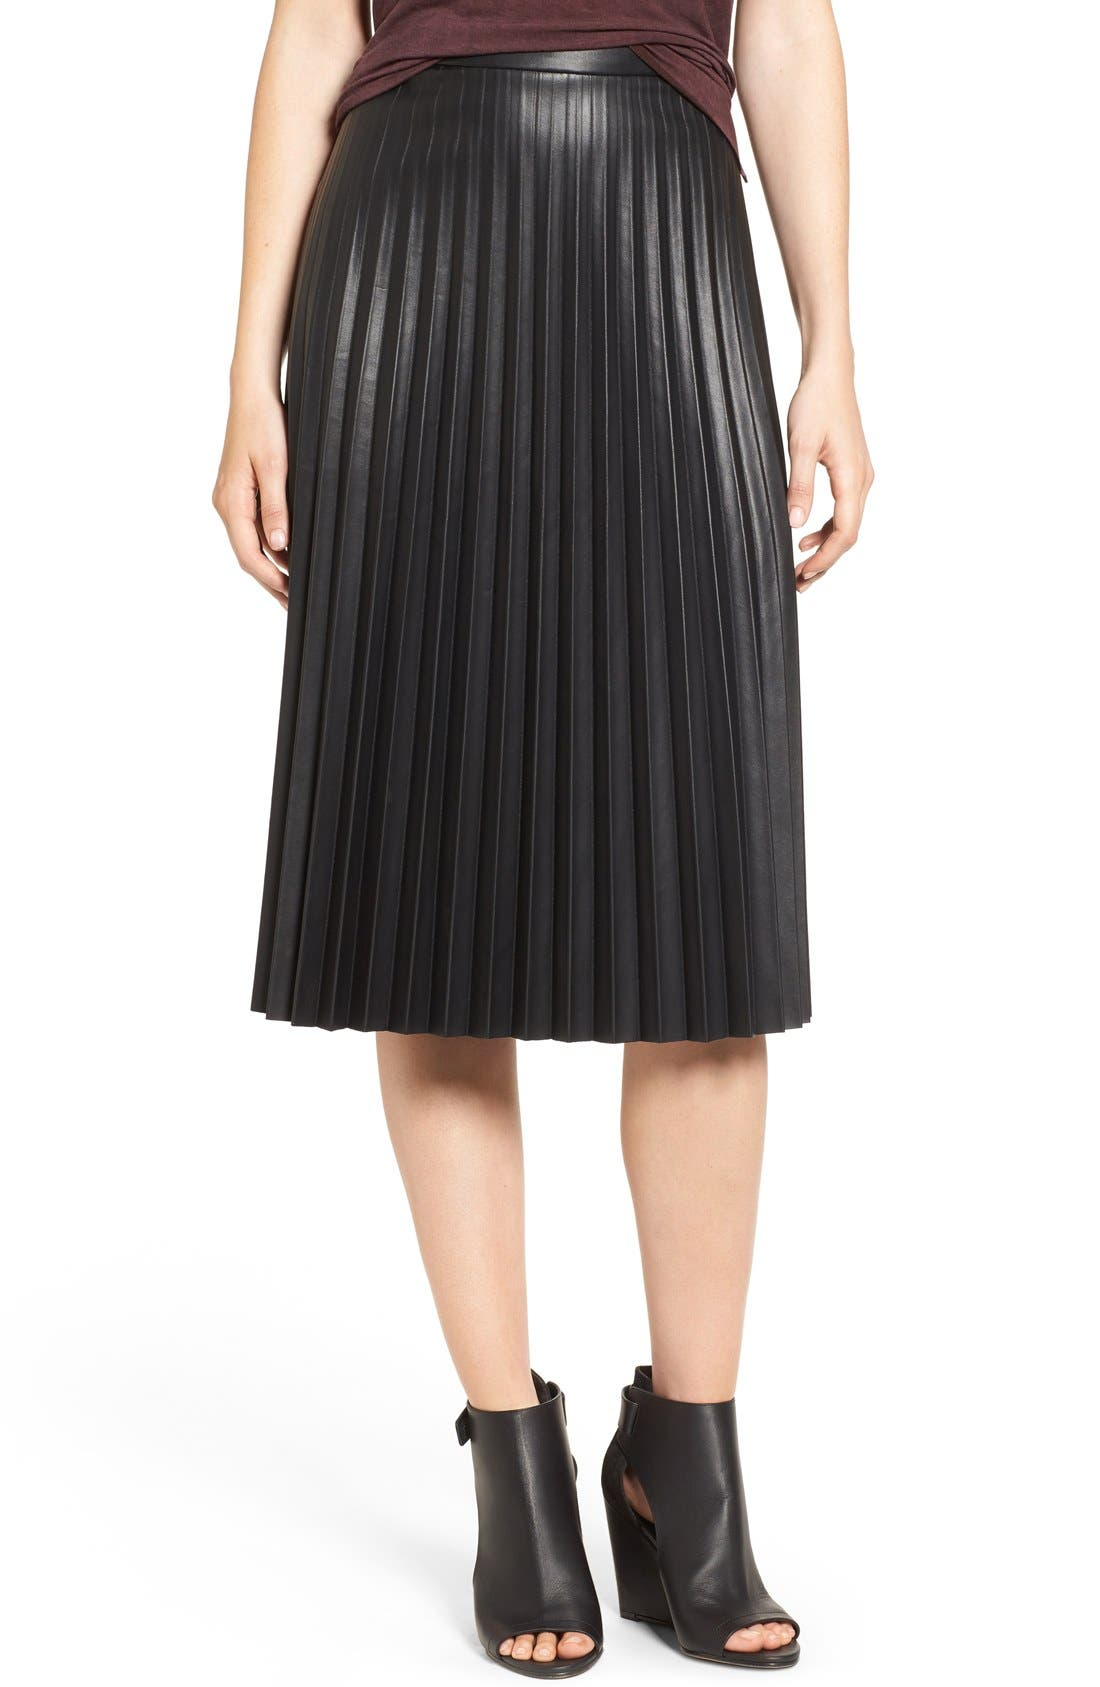 Alternate Image 1 Selected - Trouvé Faux Leather Pleat Skirt